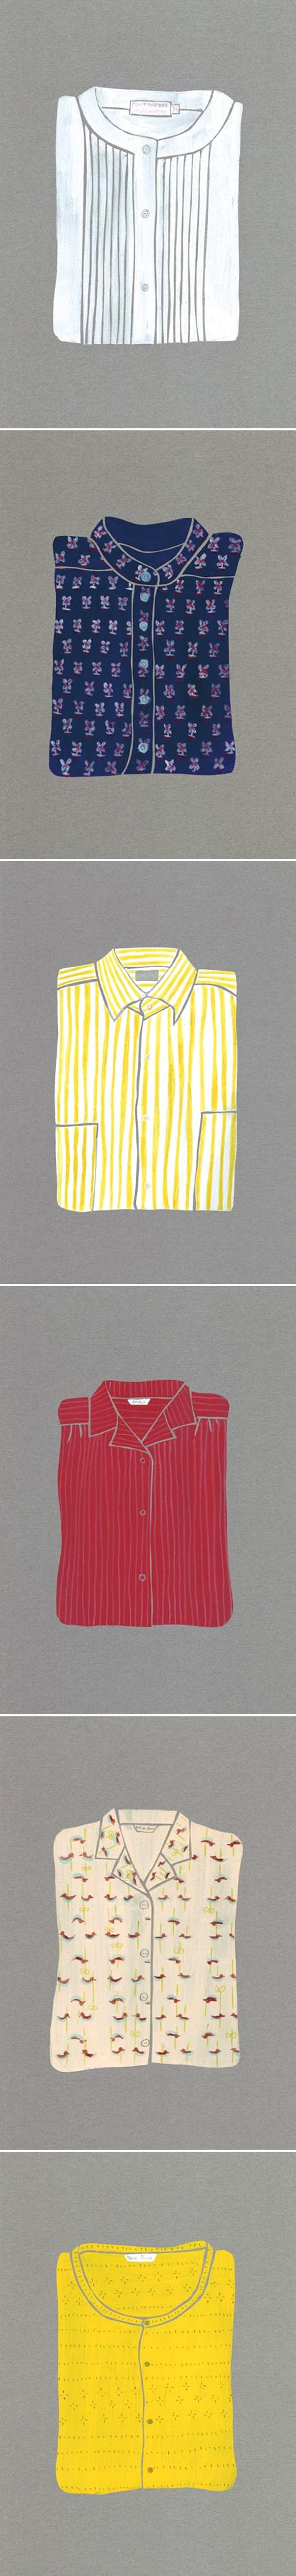 Kubo Ayako via thejealouscurator: I want these all to be real shirts and to be in my closet, please. #Illustration